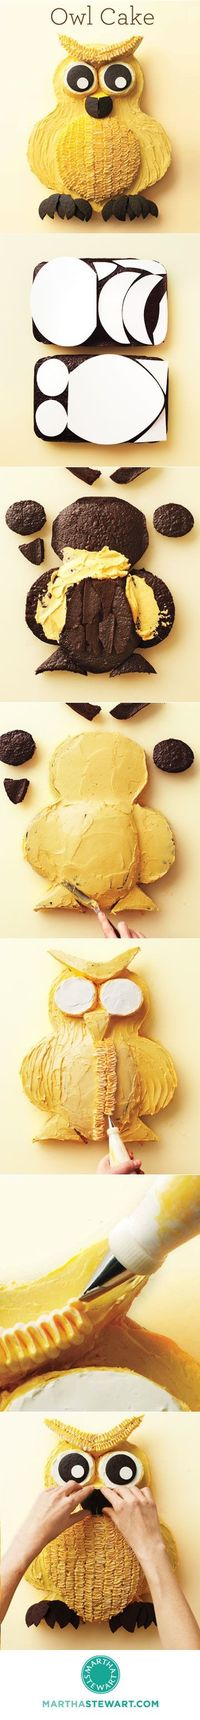 Owl Cake How-To-- sooo whoo is making me this for my birthday?